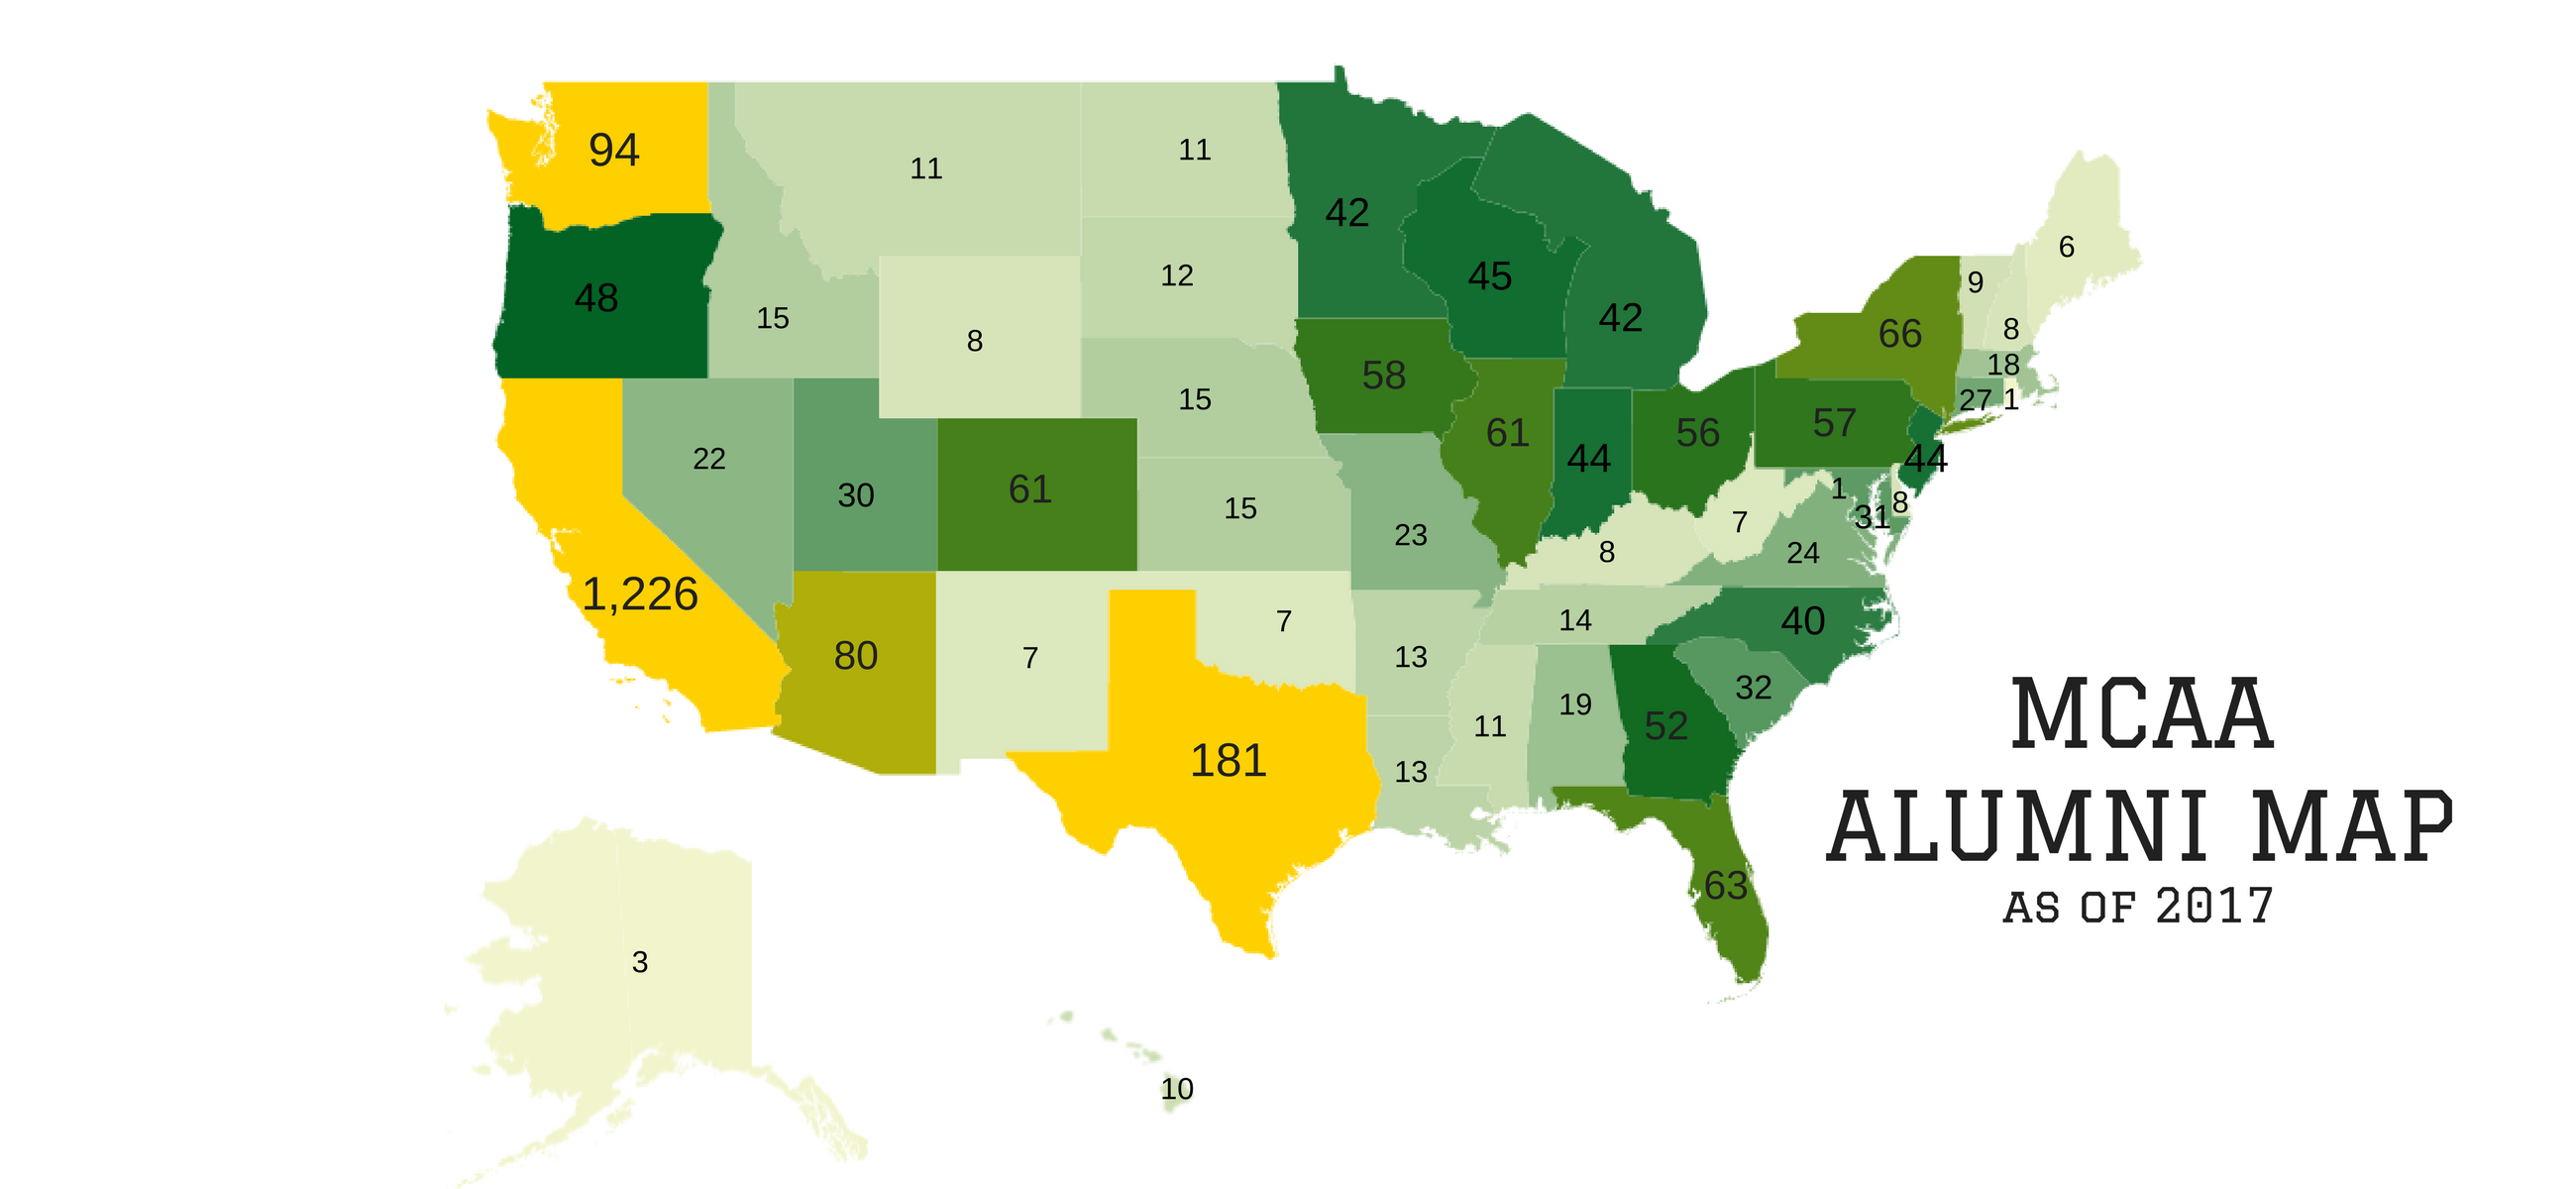 Map of number of United States alumni per state from 2017